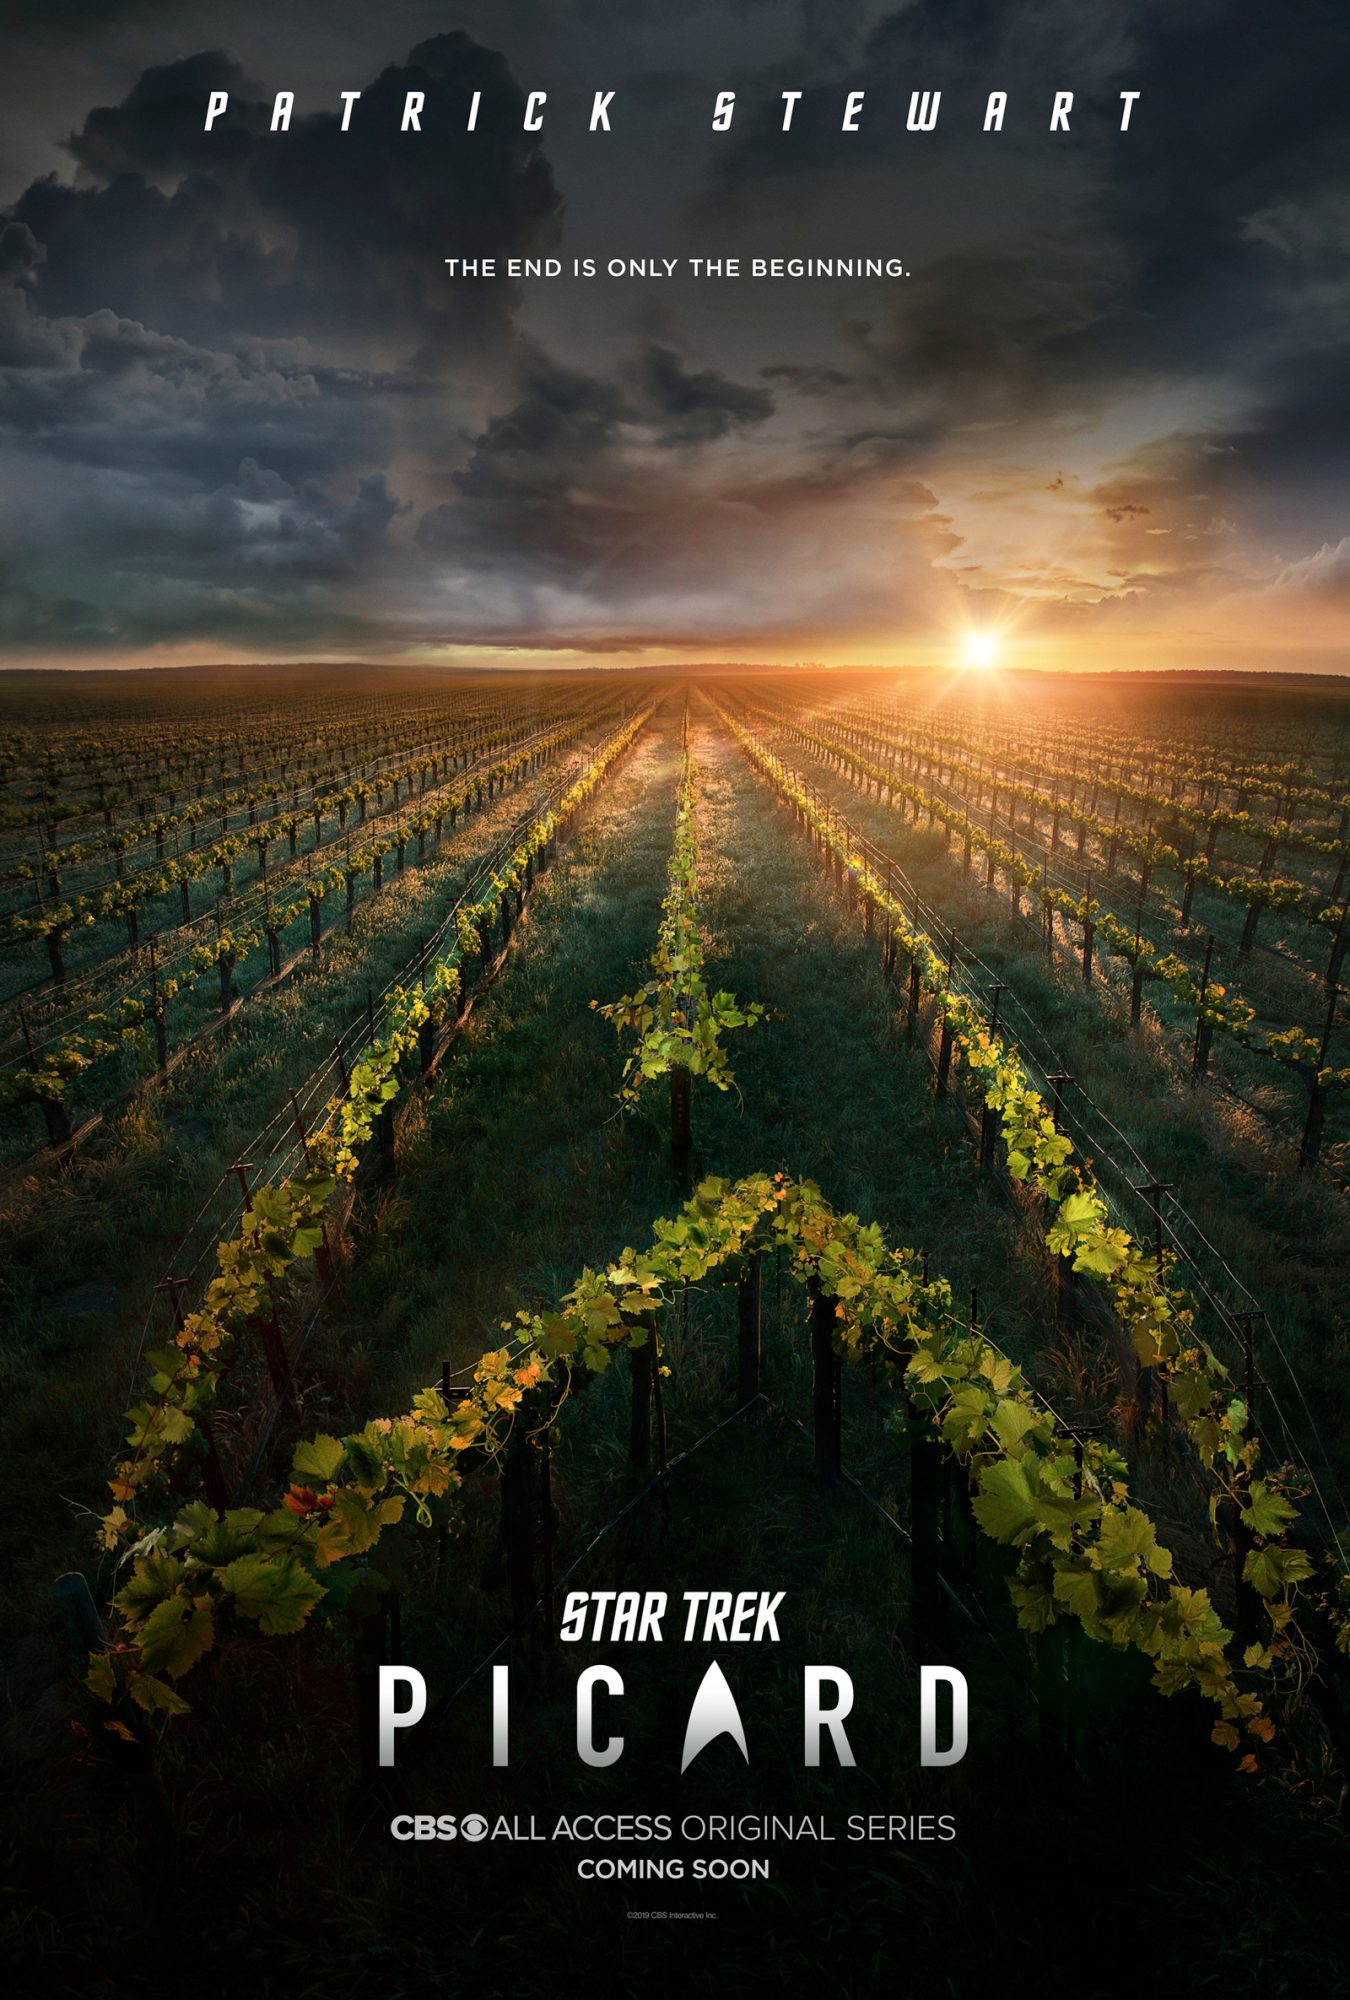 star-trek-picard-art-VT-BLOG0519.jpg